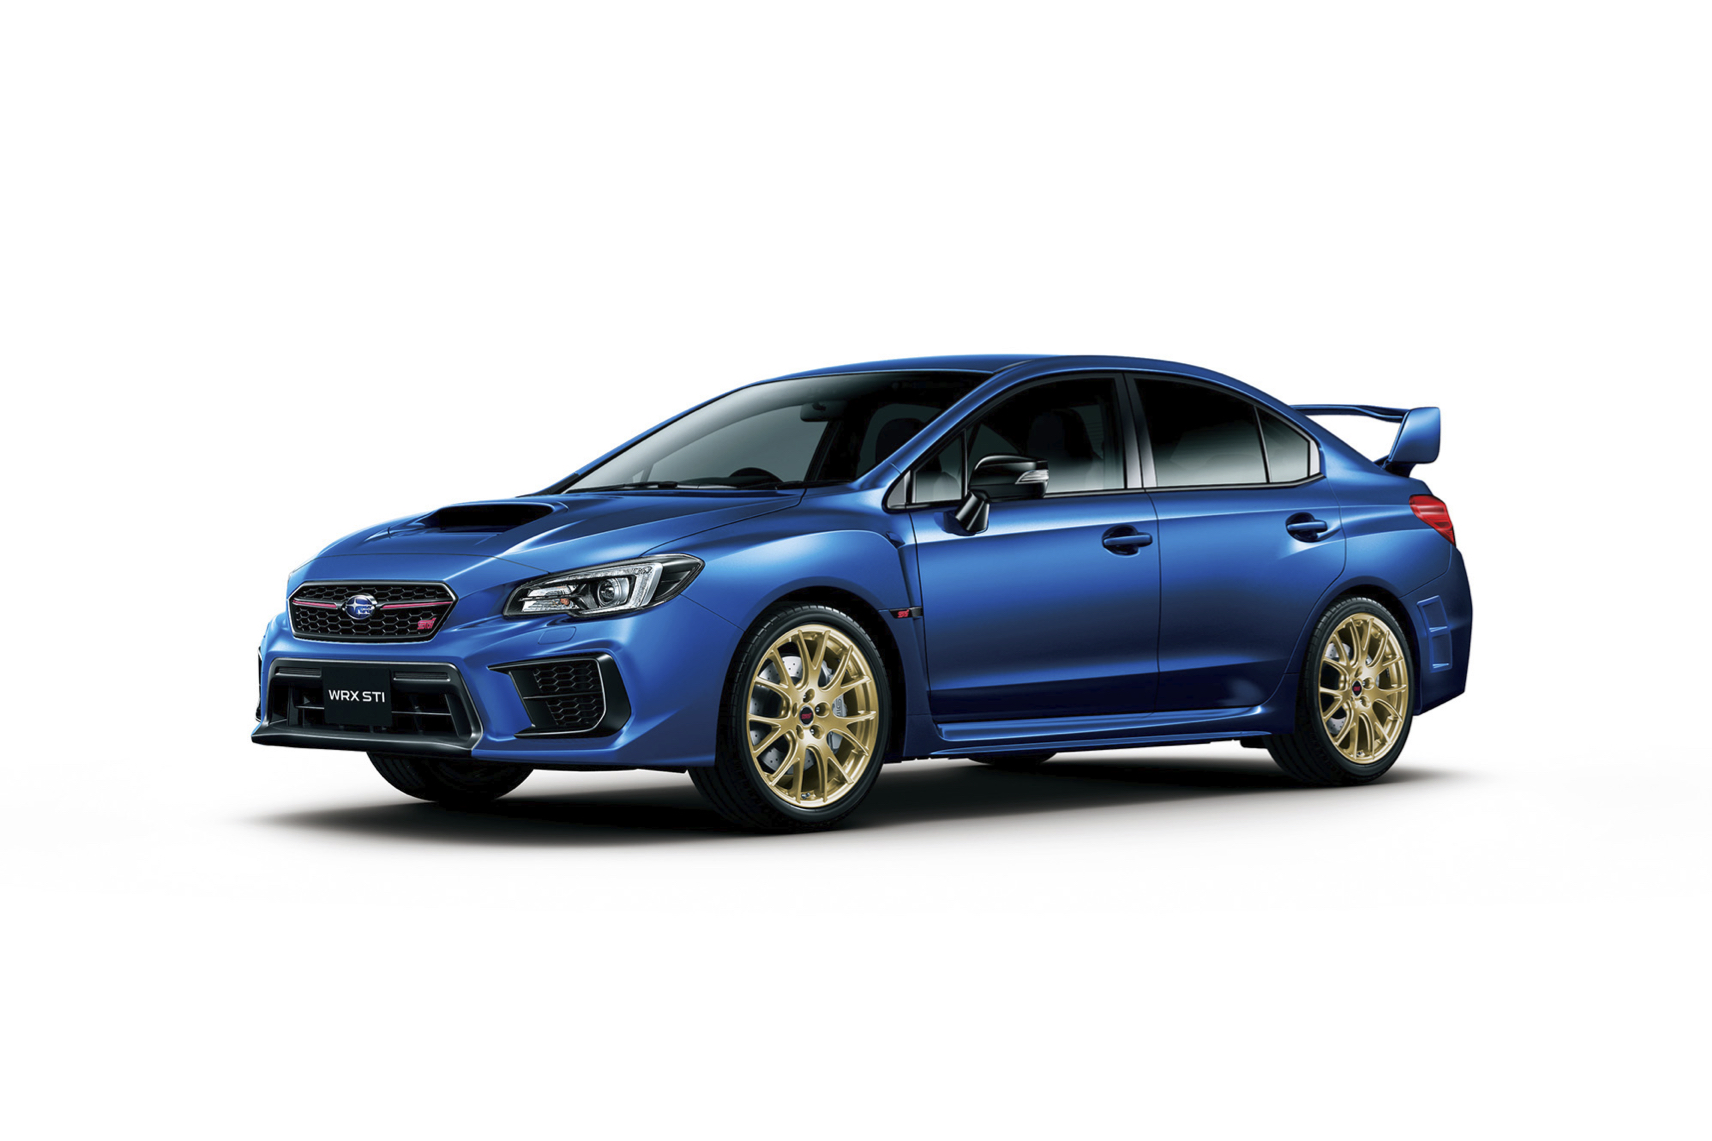 Subaru_WRX_STI_EJ20_Final_Edition_0022